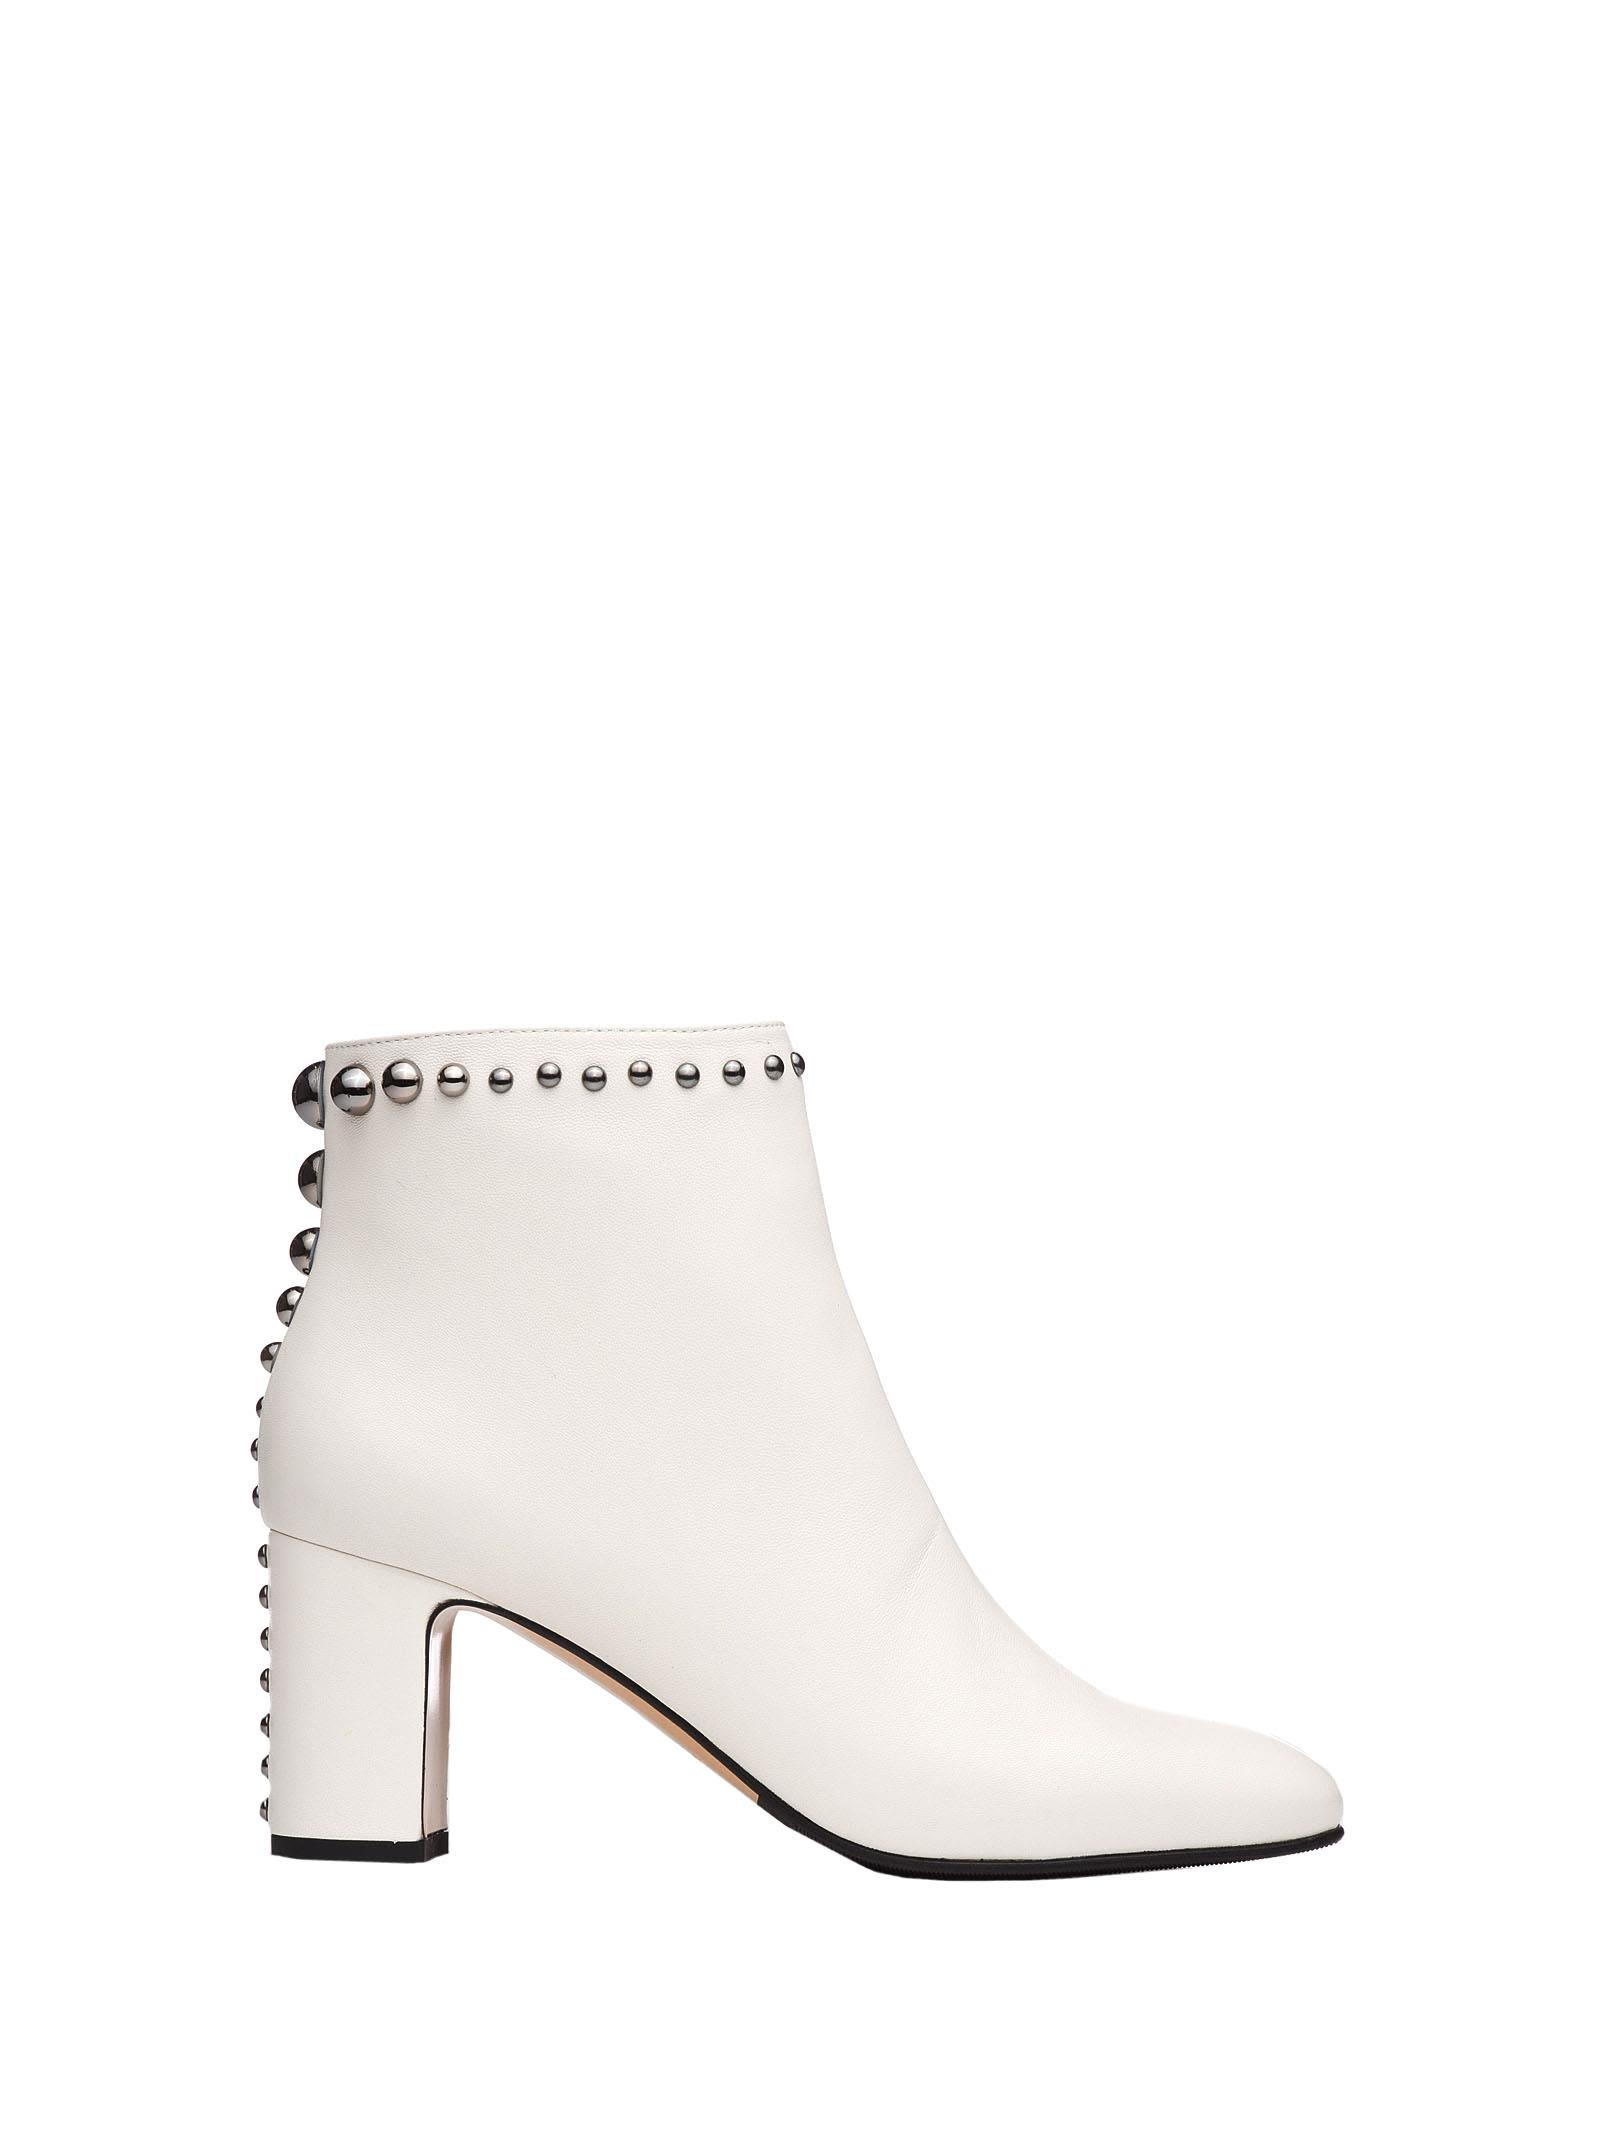 NINALILOU Ankle Boots With Studs in Panna